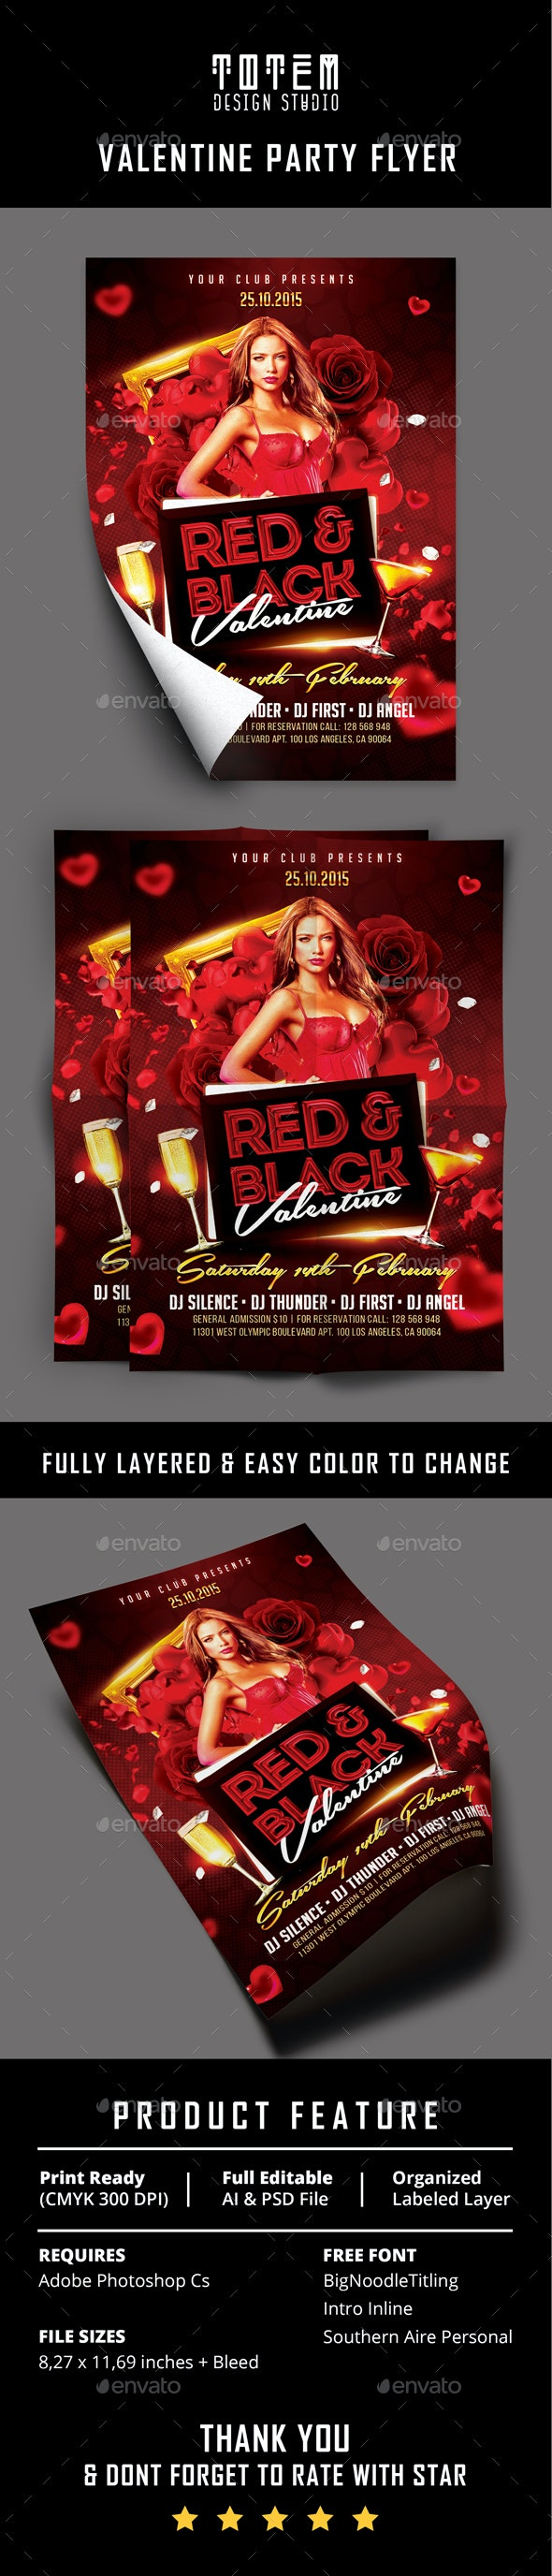 Valentine Party Flyer Vol. 3 - Print Templates